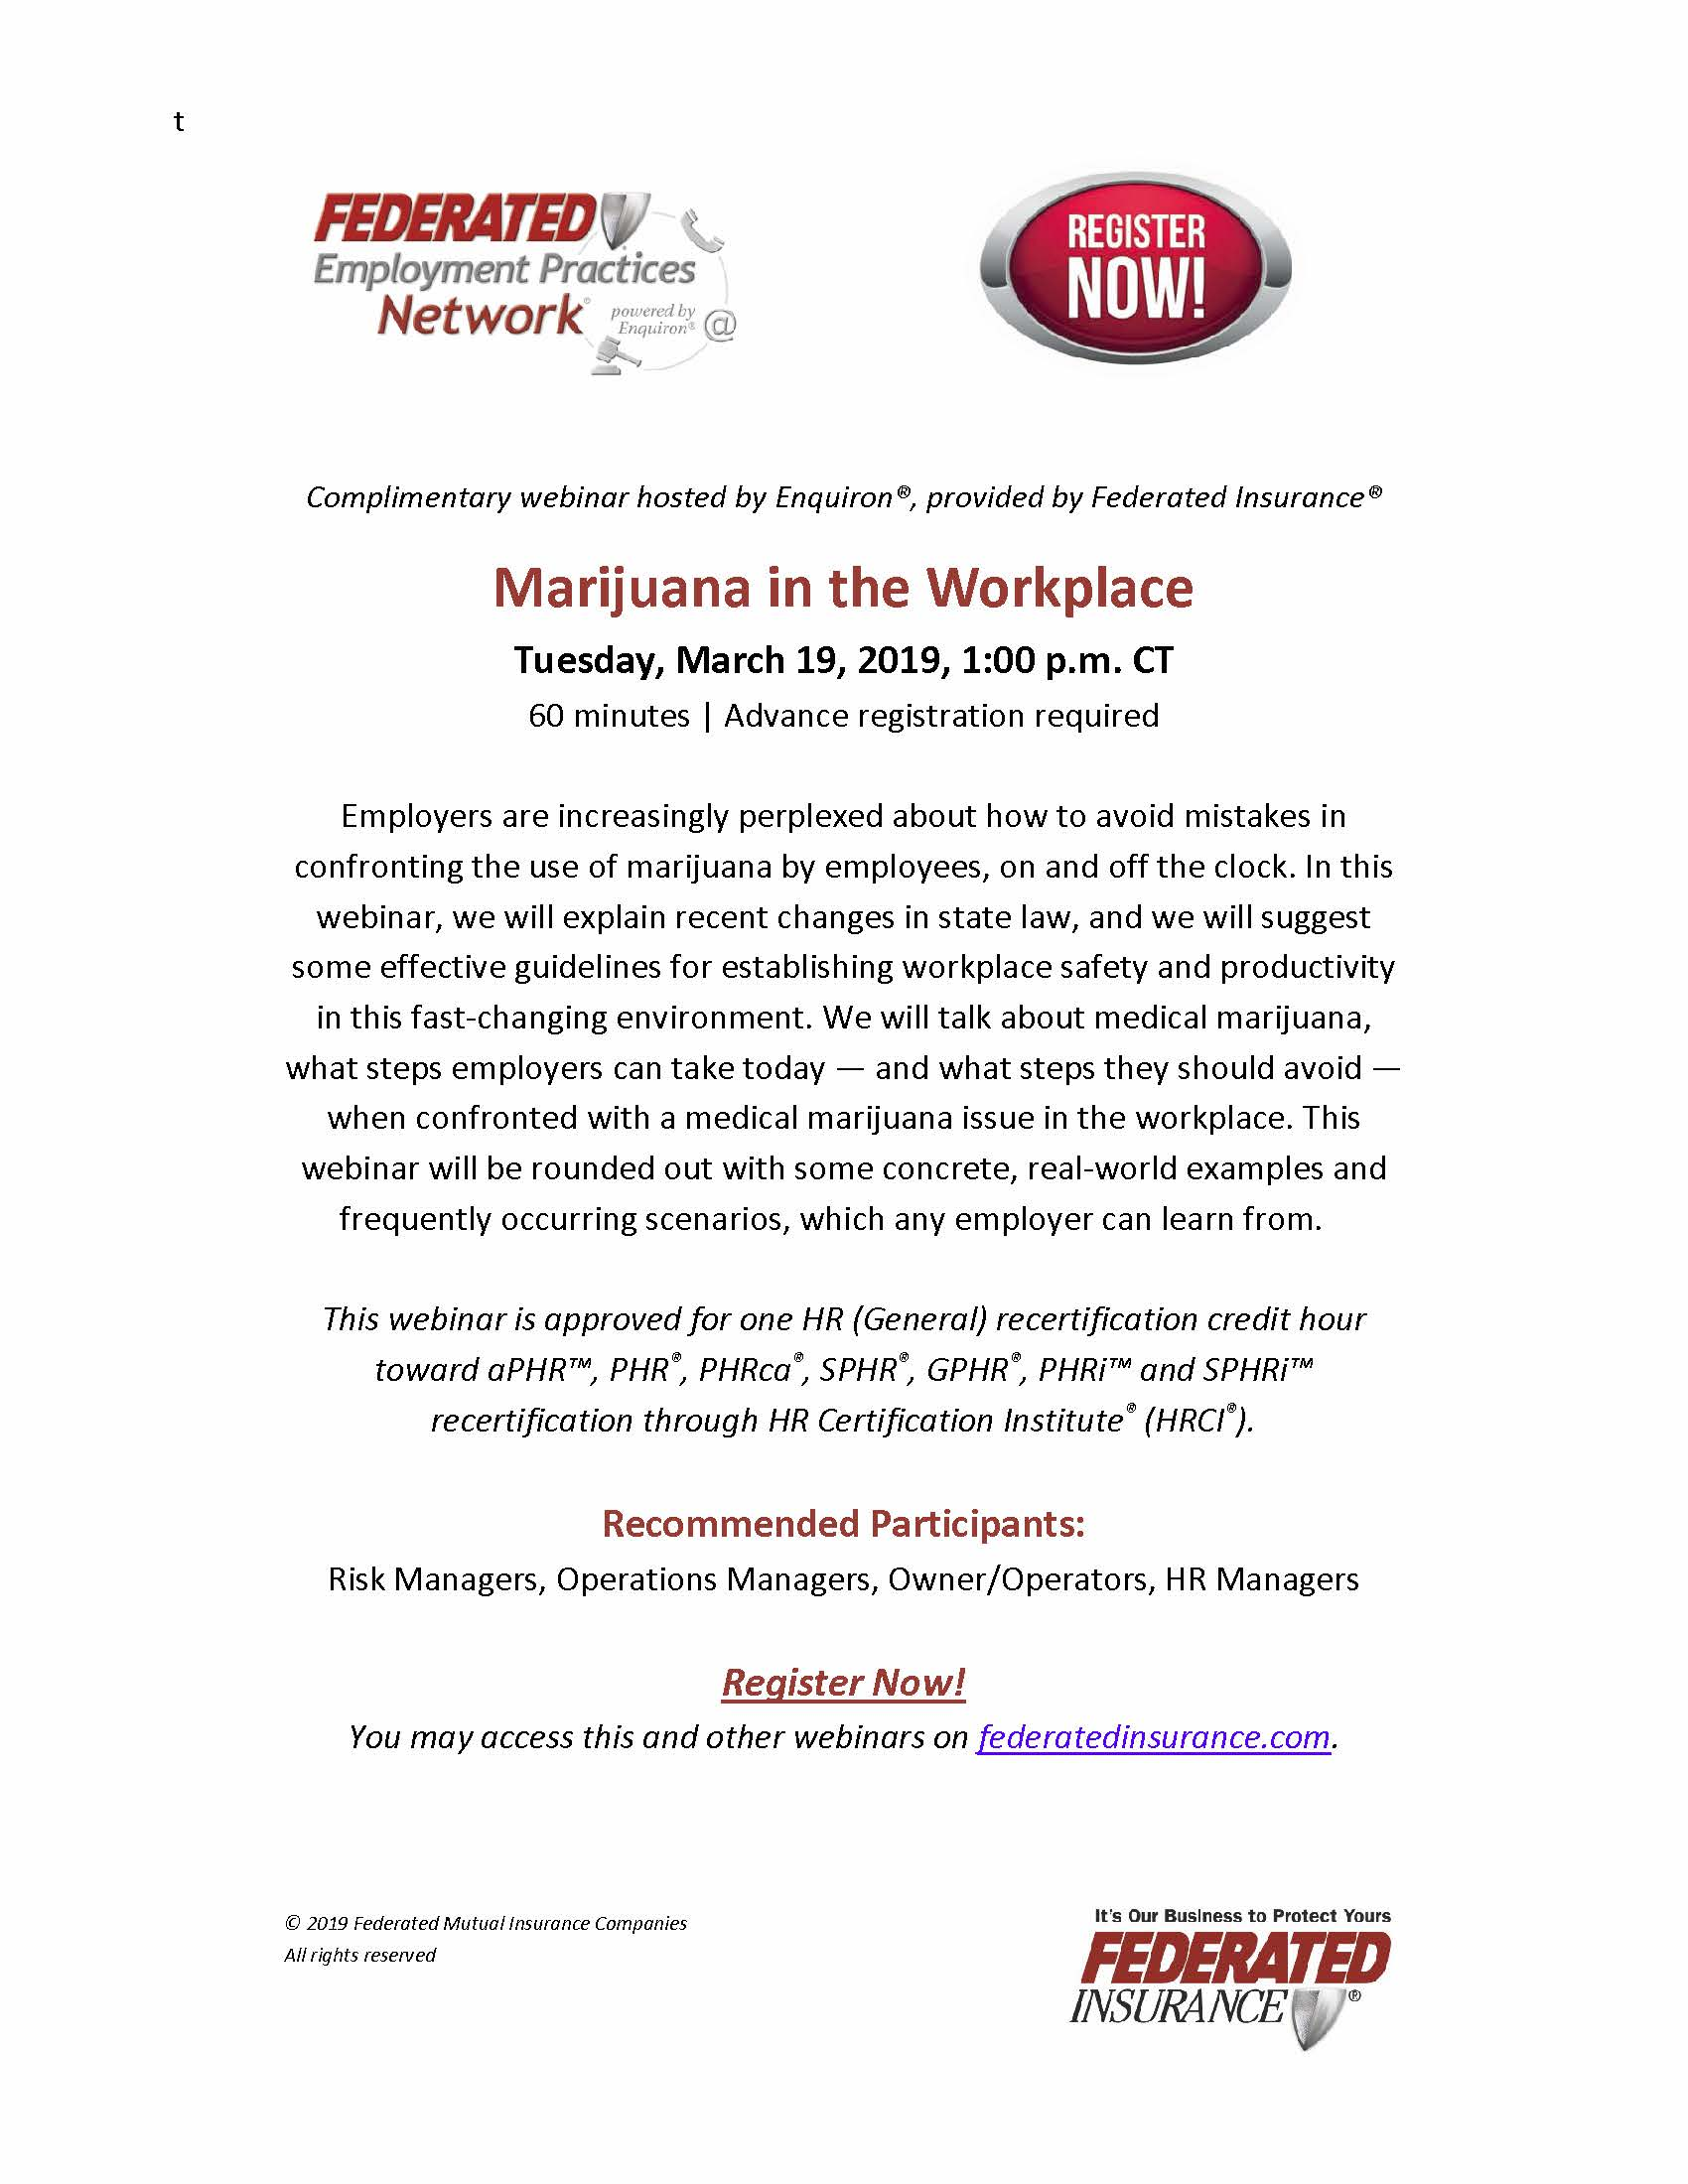 Federated Webinar_Marijuana in the Workplace_March 19_2019